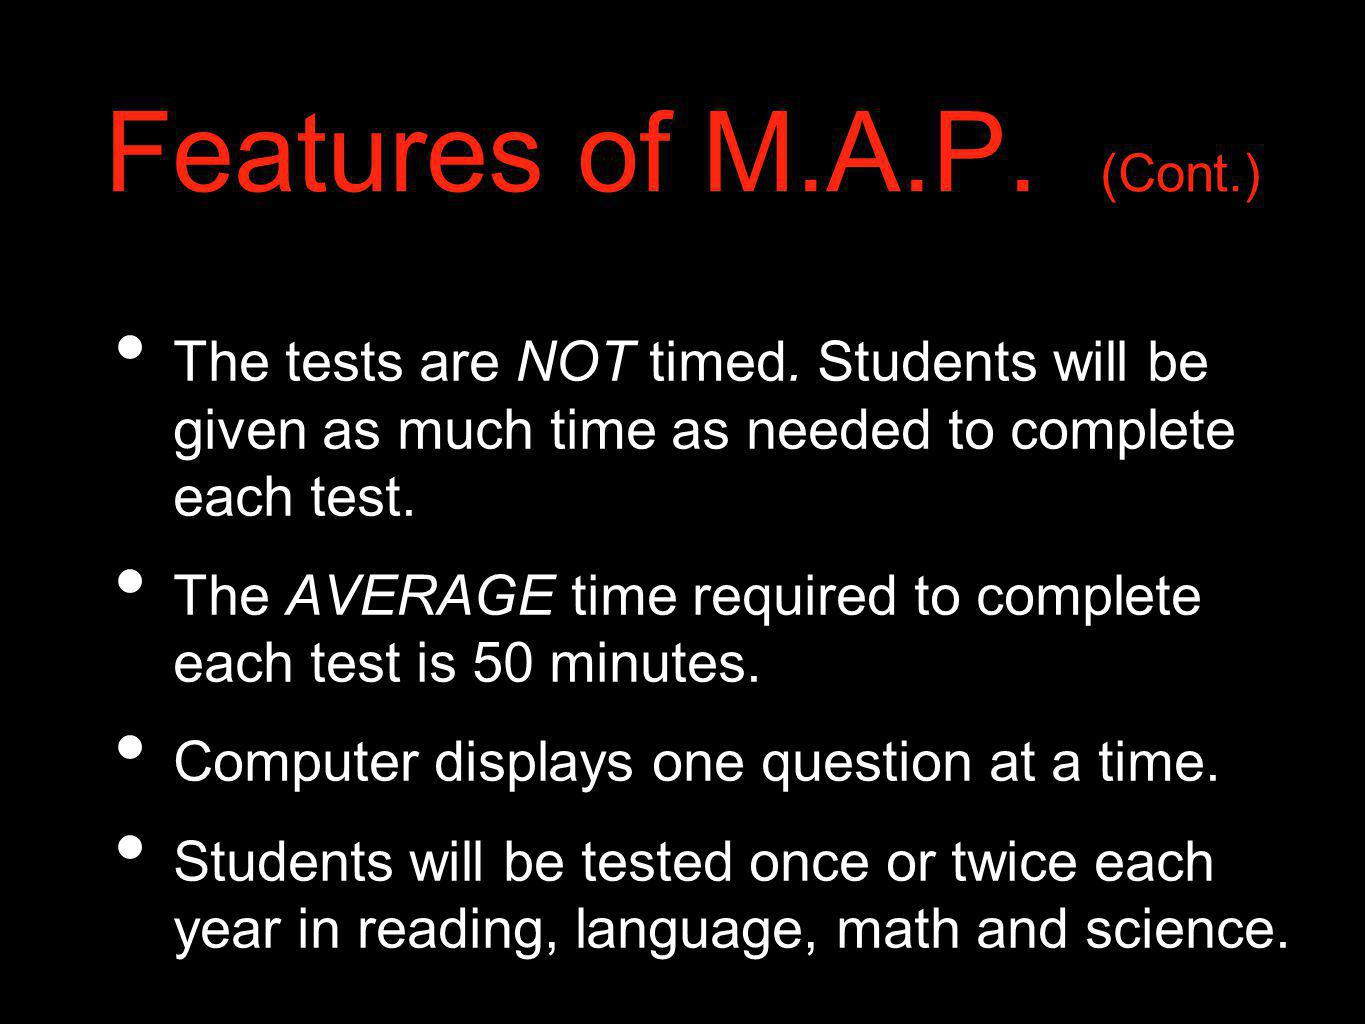 Features of M.A.P. (Cont.) The tests are NOT timed. Students will be given as much time as needed to complete each test.